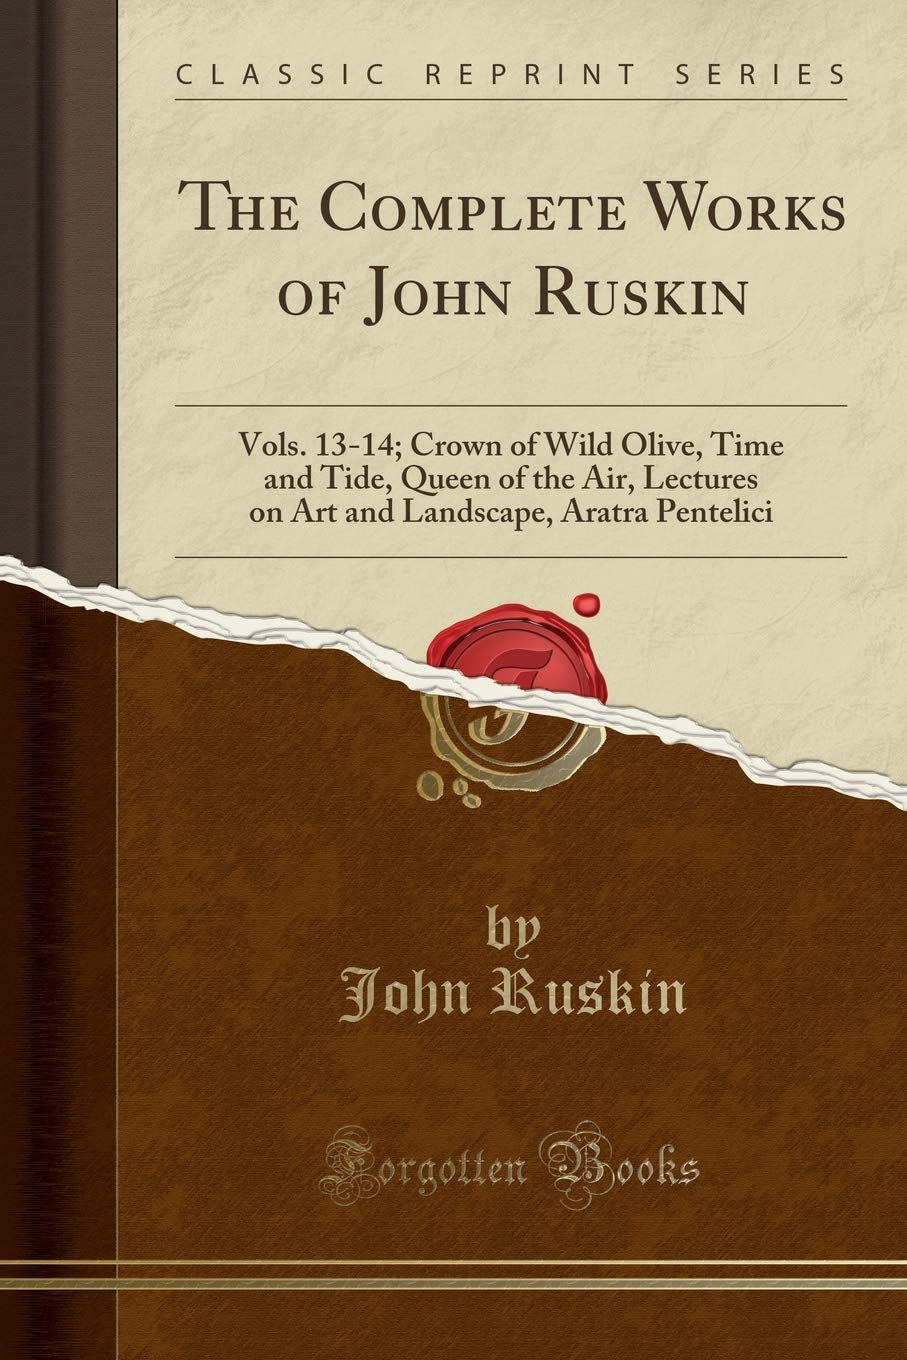 The Complete Works of John Ruskin: Vols. 13-14; Crown of Wild Olive, Time and Tide, Queen of the Air, Lectures on Art and Landscape, Aratra Pentelici (Classic Reprint) pdf epub